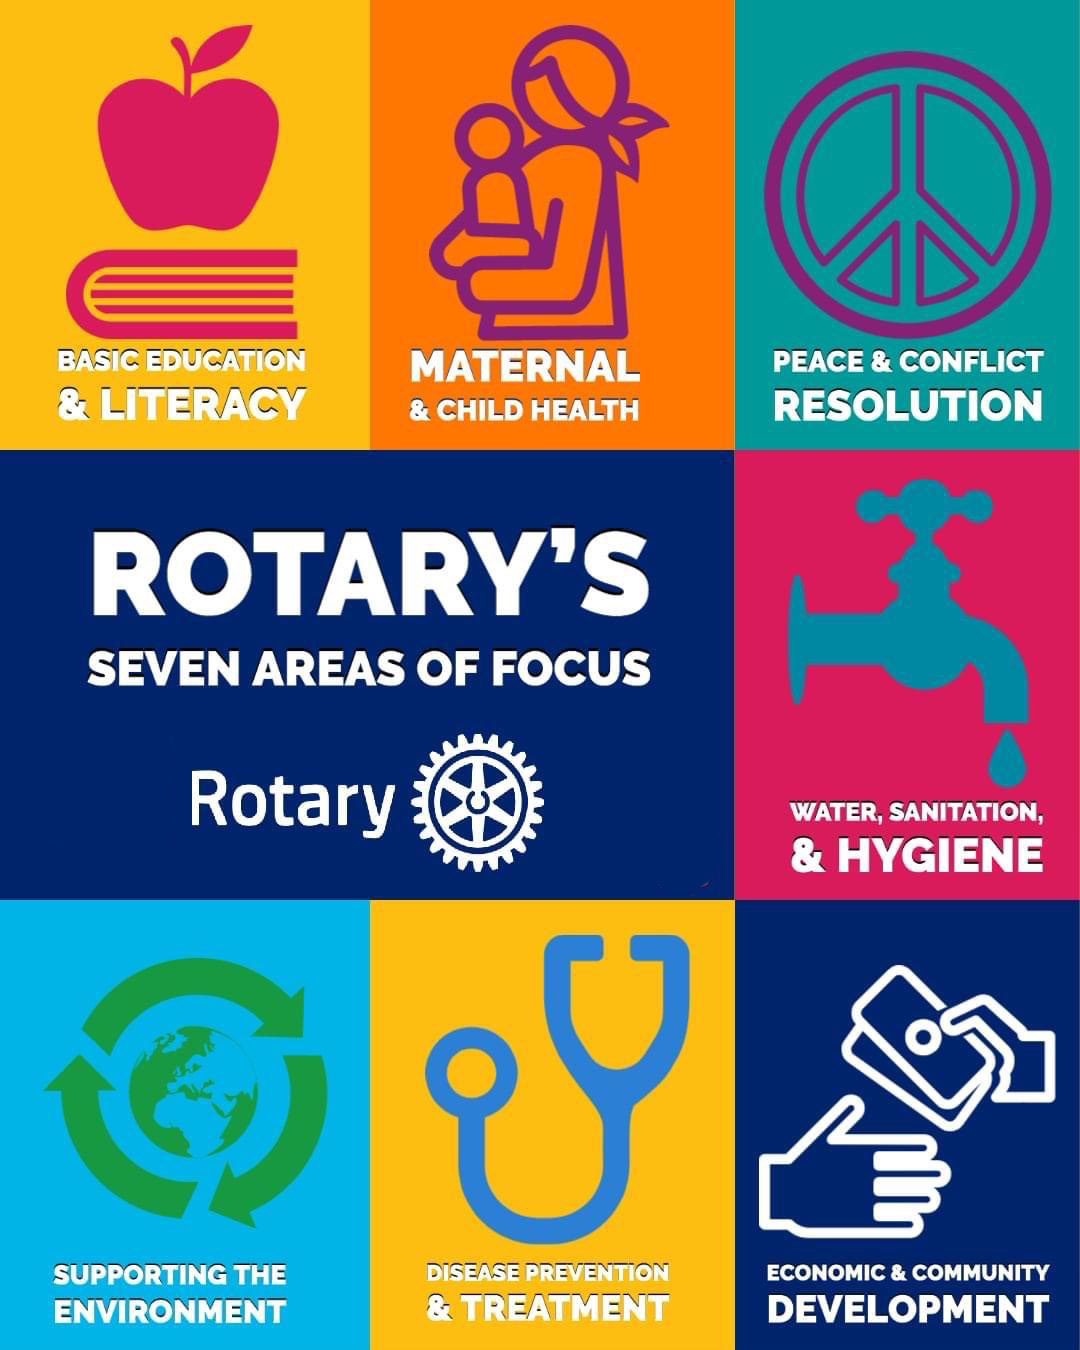 Rotary's 7 Areas of Focus